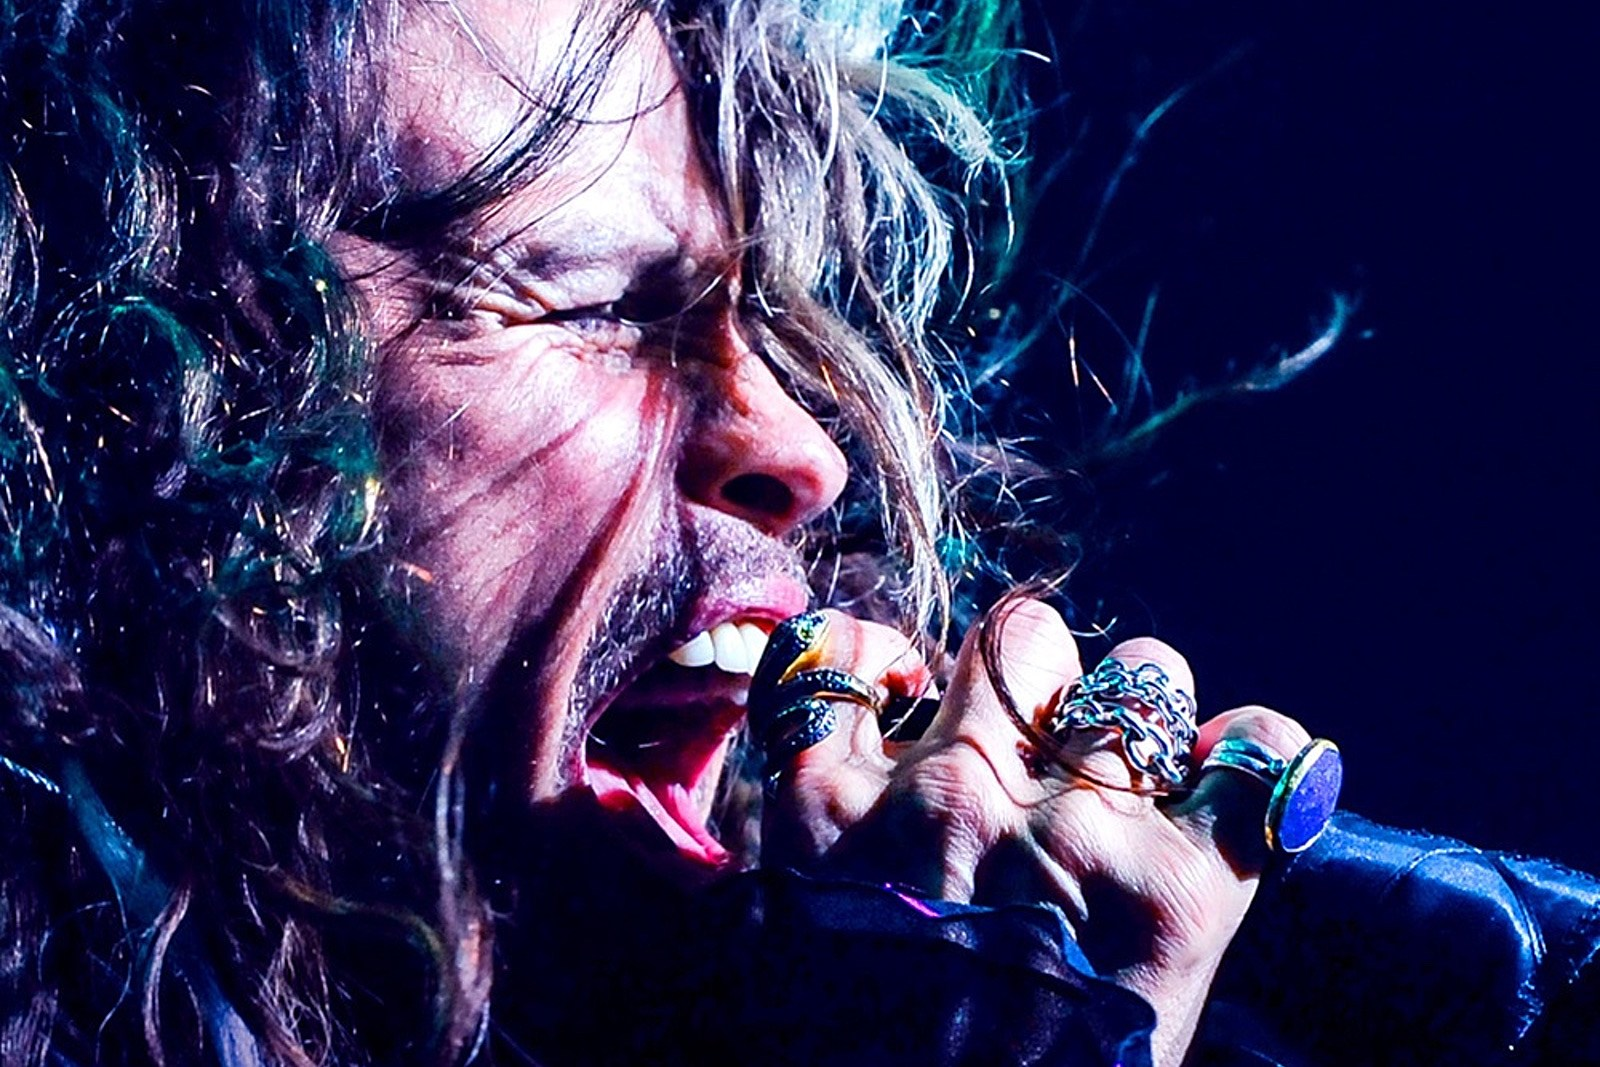 Watch a Clip From Steven Tyler's New 'Out on a Limb' Documentary